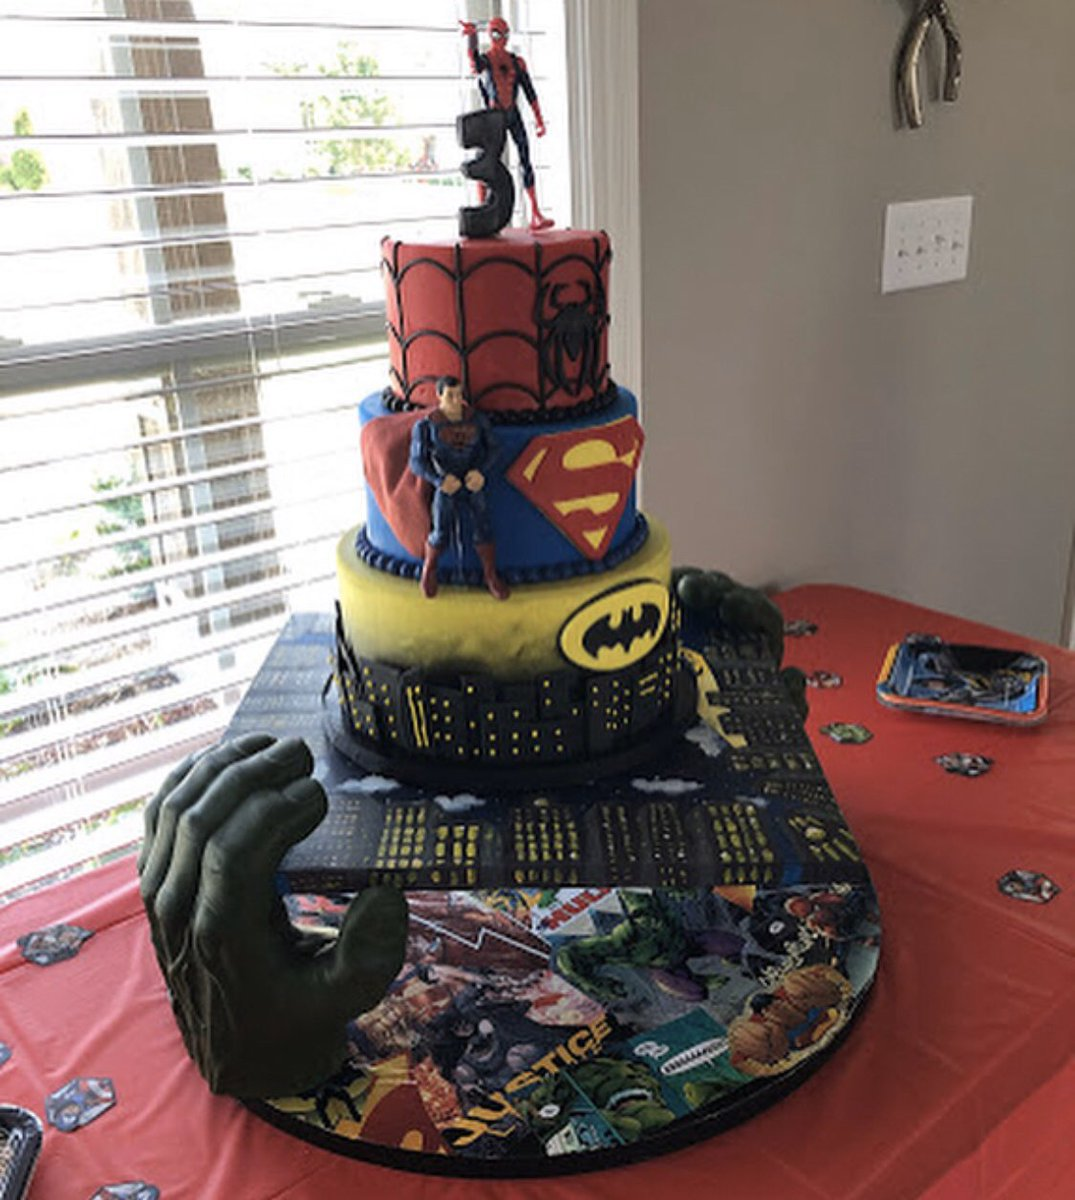 I want to do another project like this soon  It was so fun making this vision come to life!  • •  #SumthinSweet #Cake #Superhero #Art #Hulk #Spiderman #Batman #Superman #Smash #JusticeLeague #Comics #Marvel #tobymaguire #FoodNetwork #CakeWars #Birthday<br>http://pic.twitter.com/kbpCD510OL